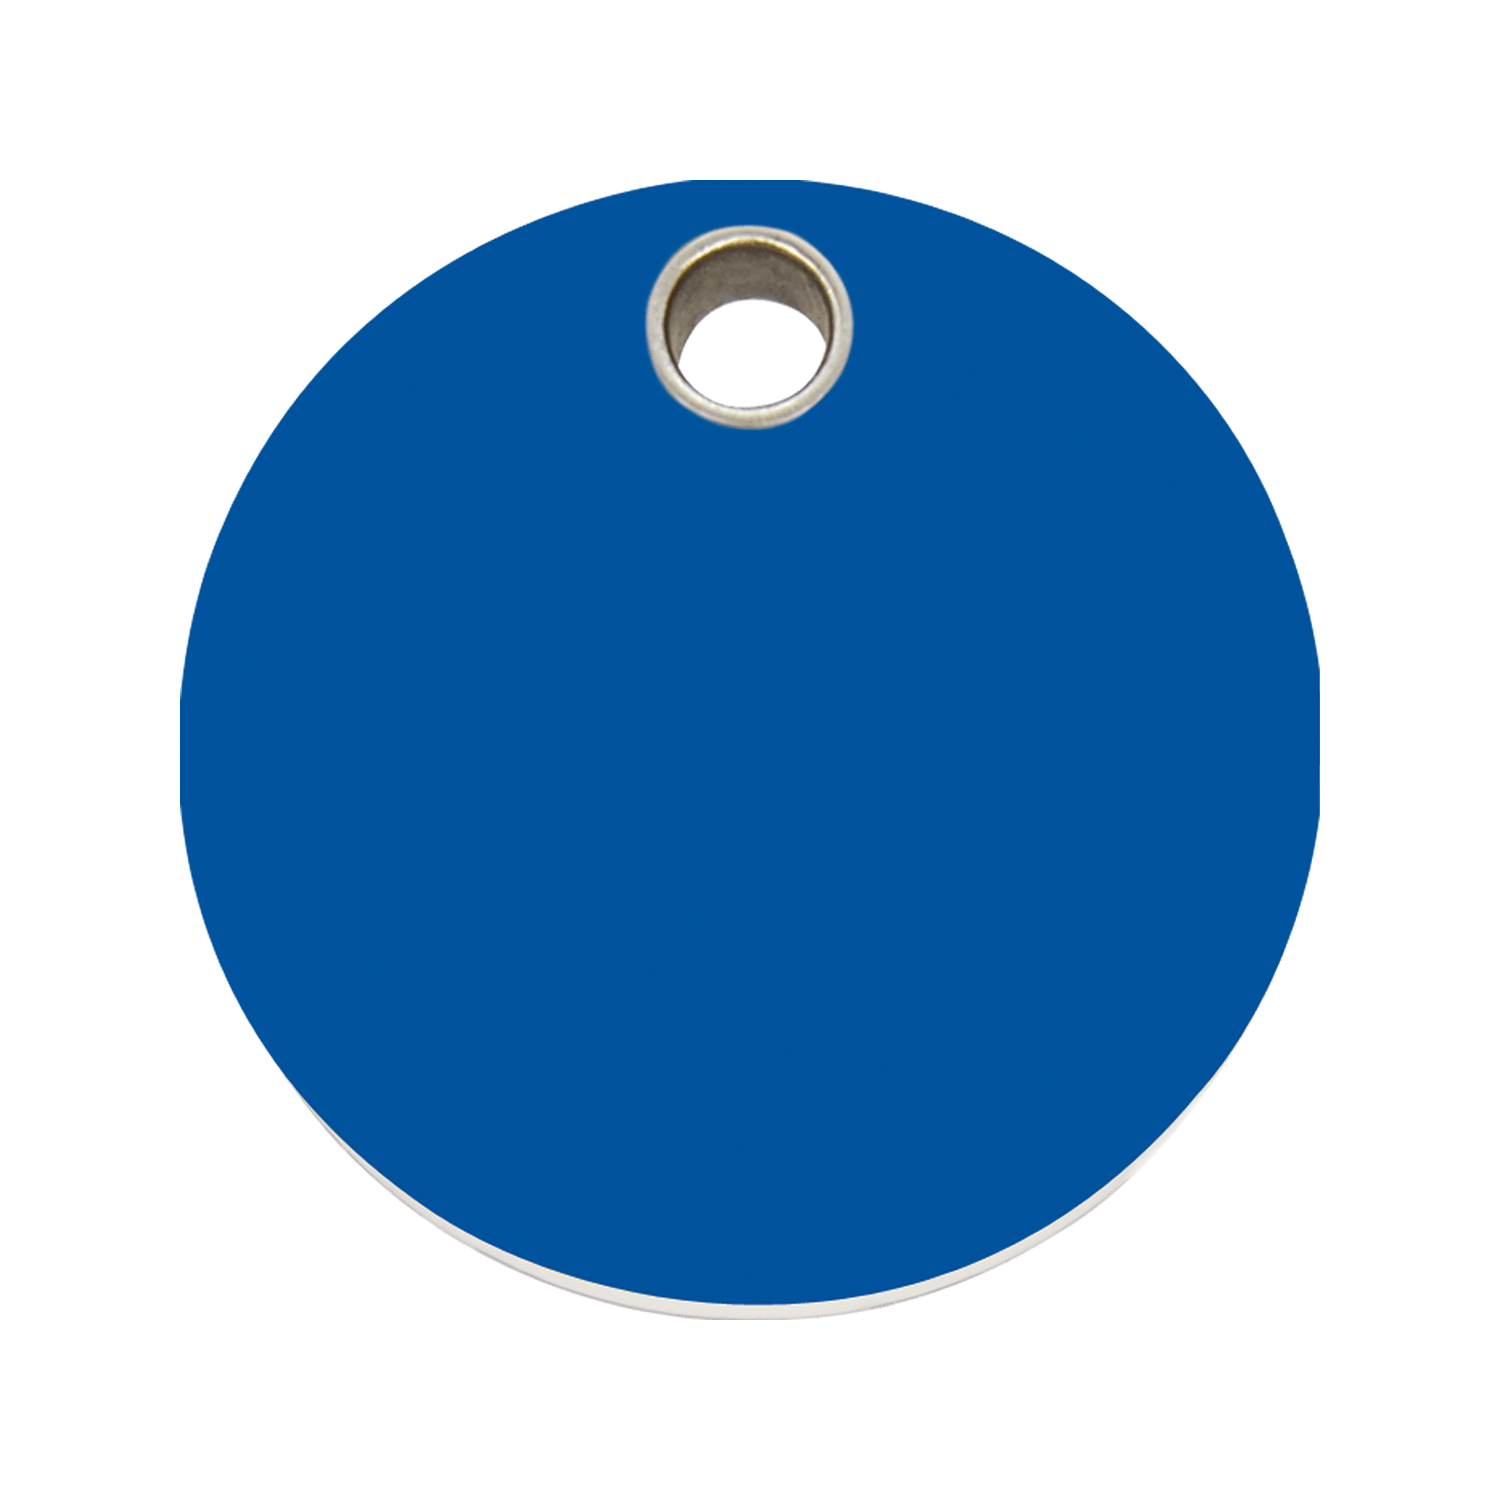 Dark Blue Circle Logo - Red Dingo Plastic Tag Circle Dark Blue 04-CL-DB (4CLNS / 4CLNM ...